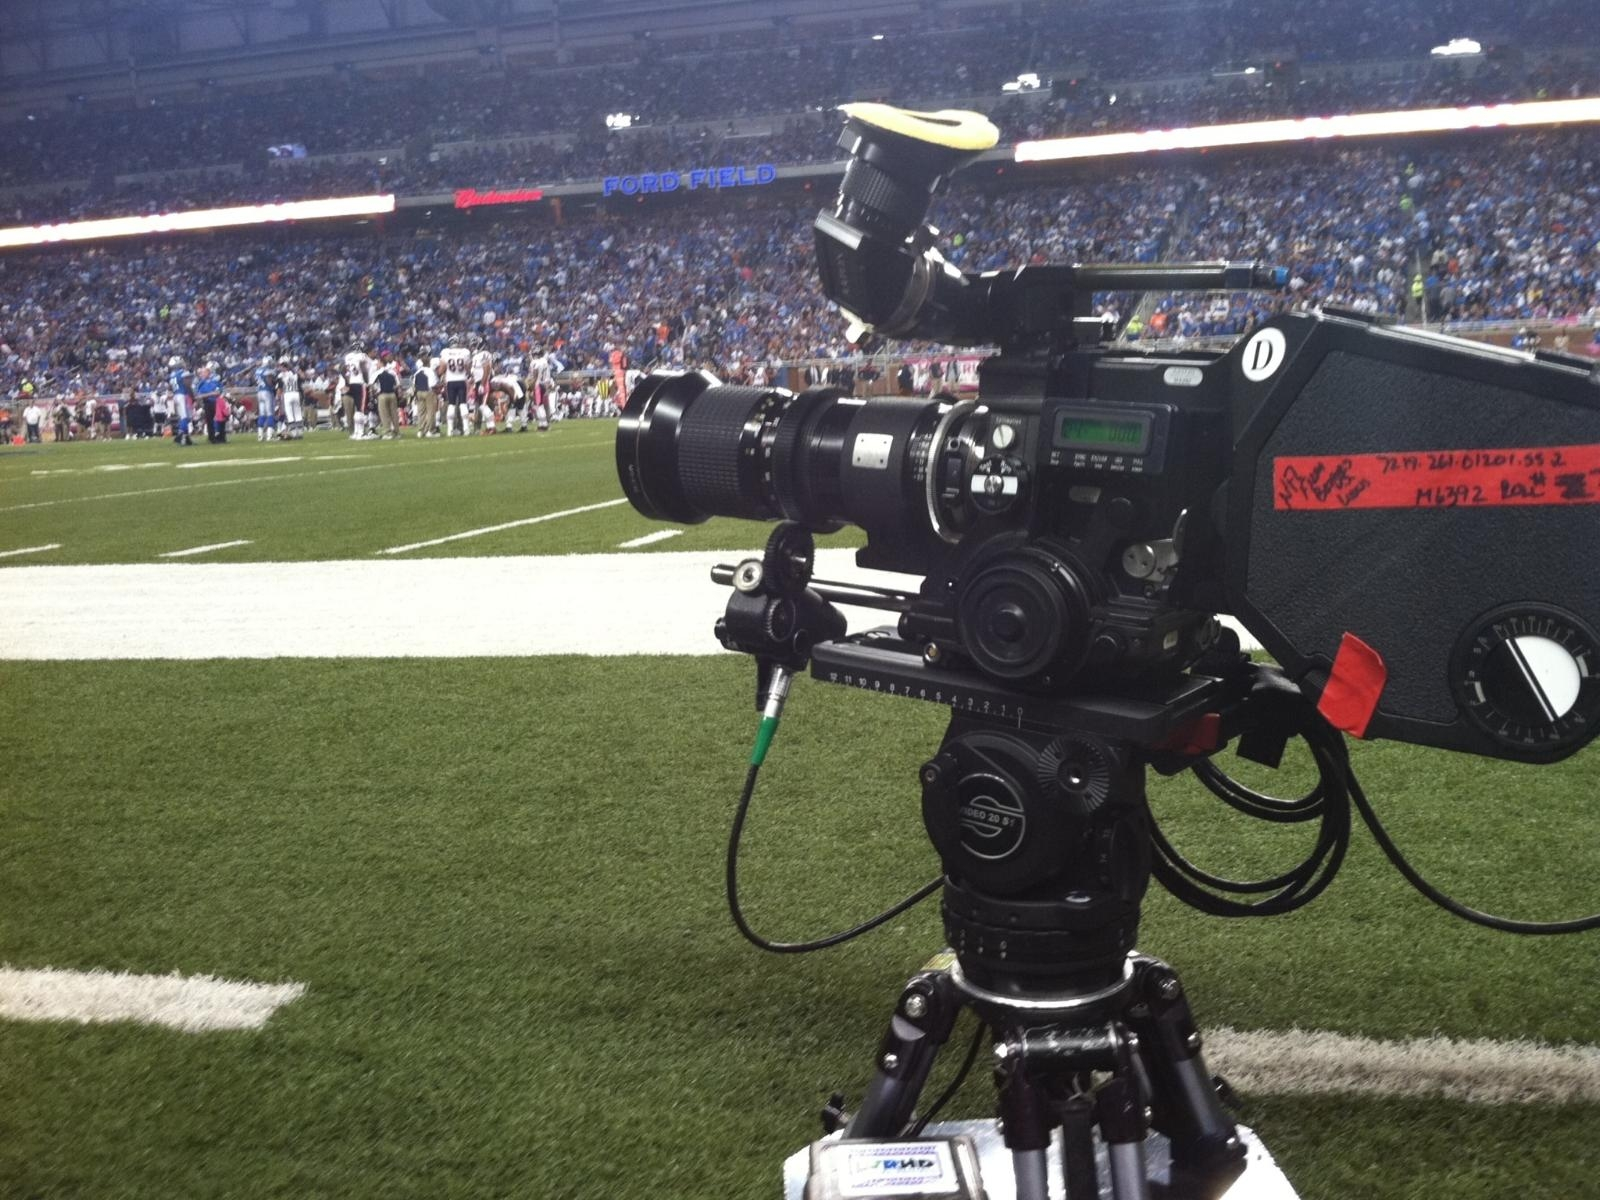 How many cameras in an NFL game? - Answers